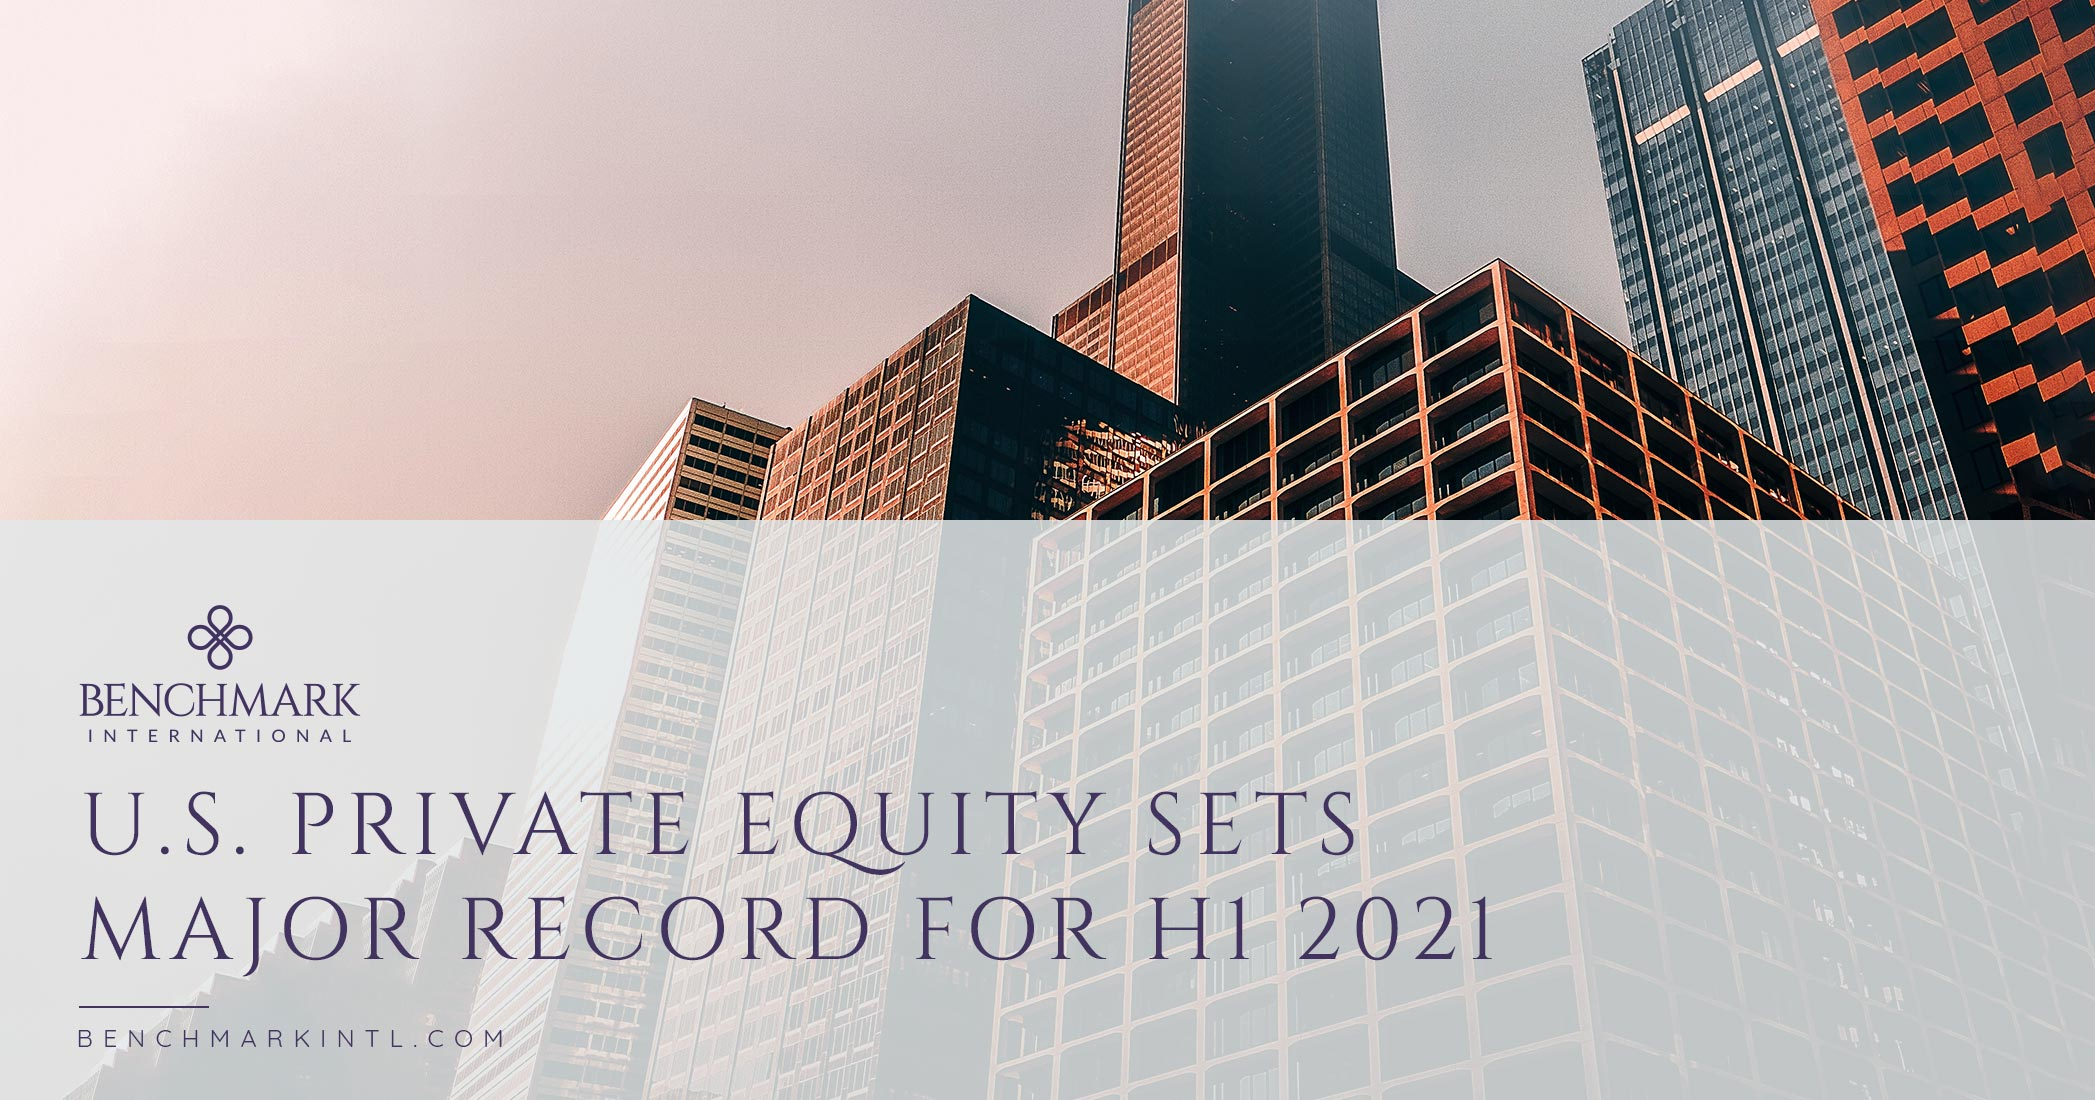 U.S. Private Equity Sets Major Record For H1 2021